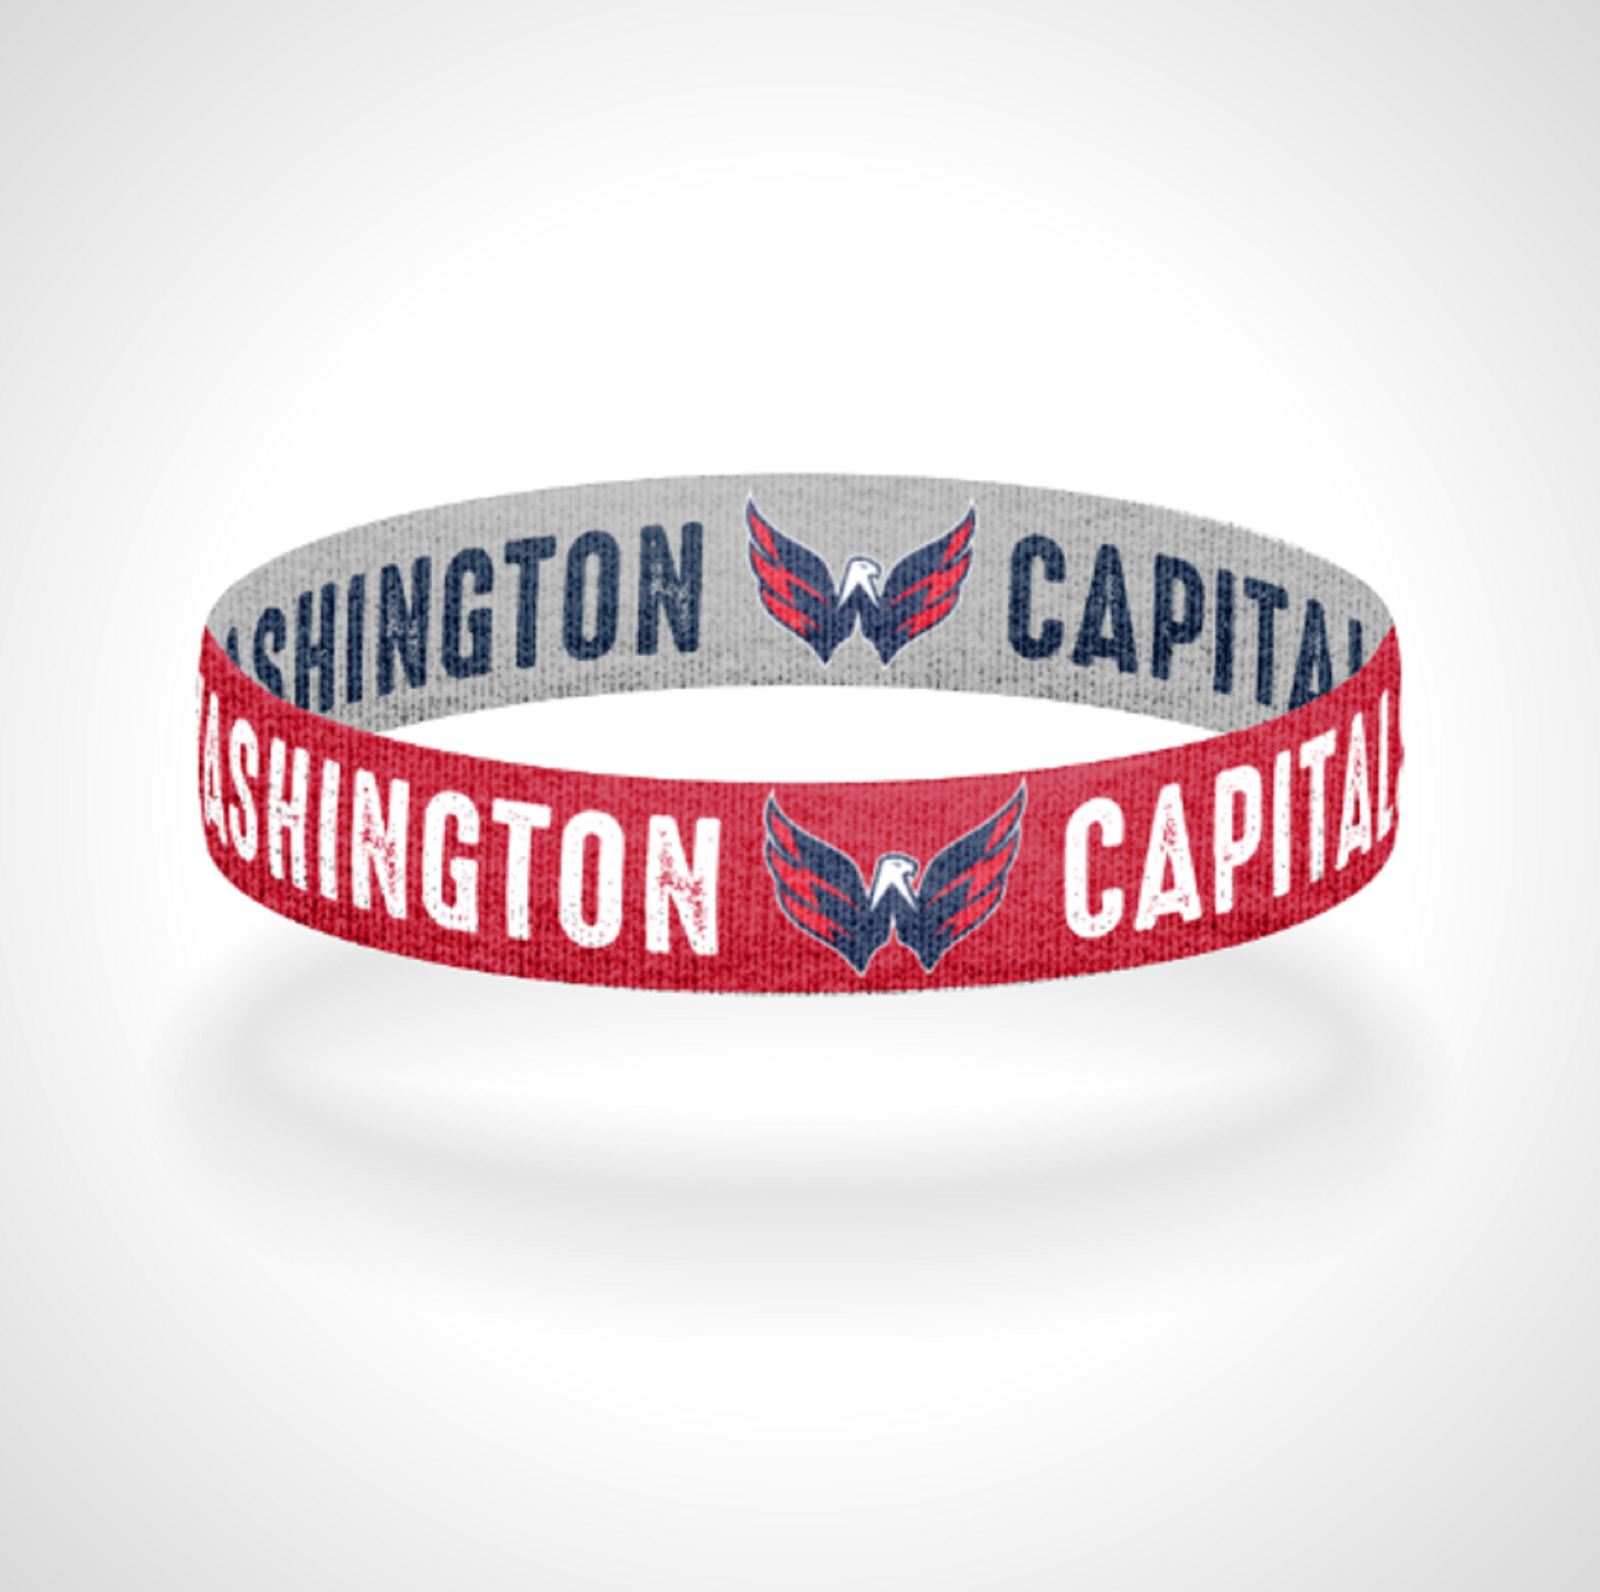 Primary image for Reversible Washington Capitals Bracelet Wristband Go Caps All Caps